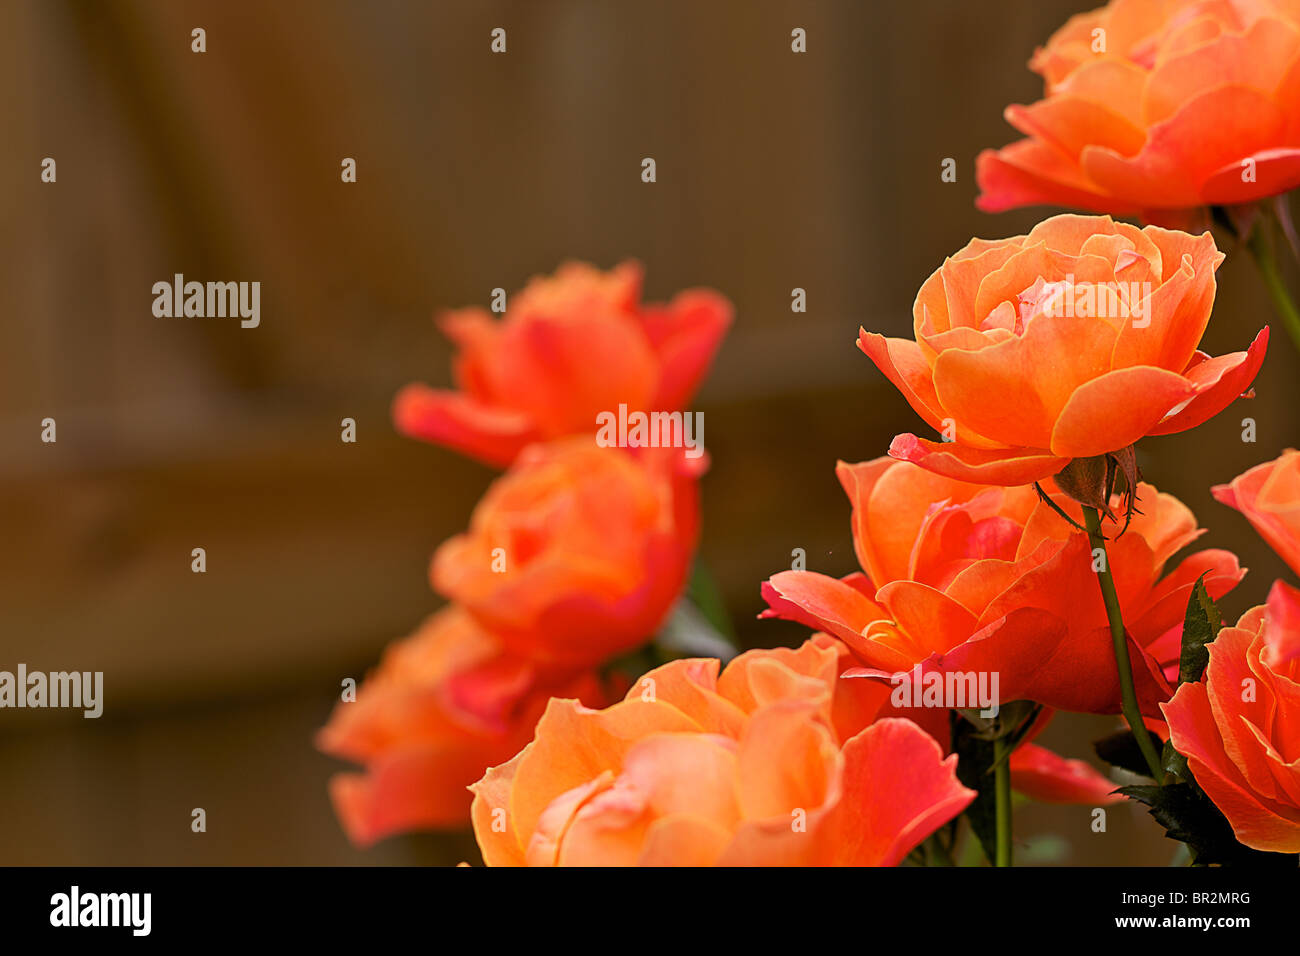 Beatiful colored orange roses in closeup in front of dark background - Stock Image